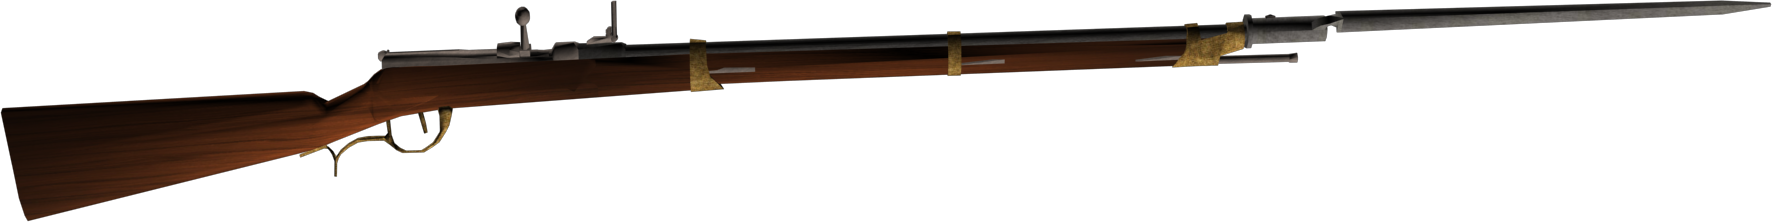 musket_m1841.png